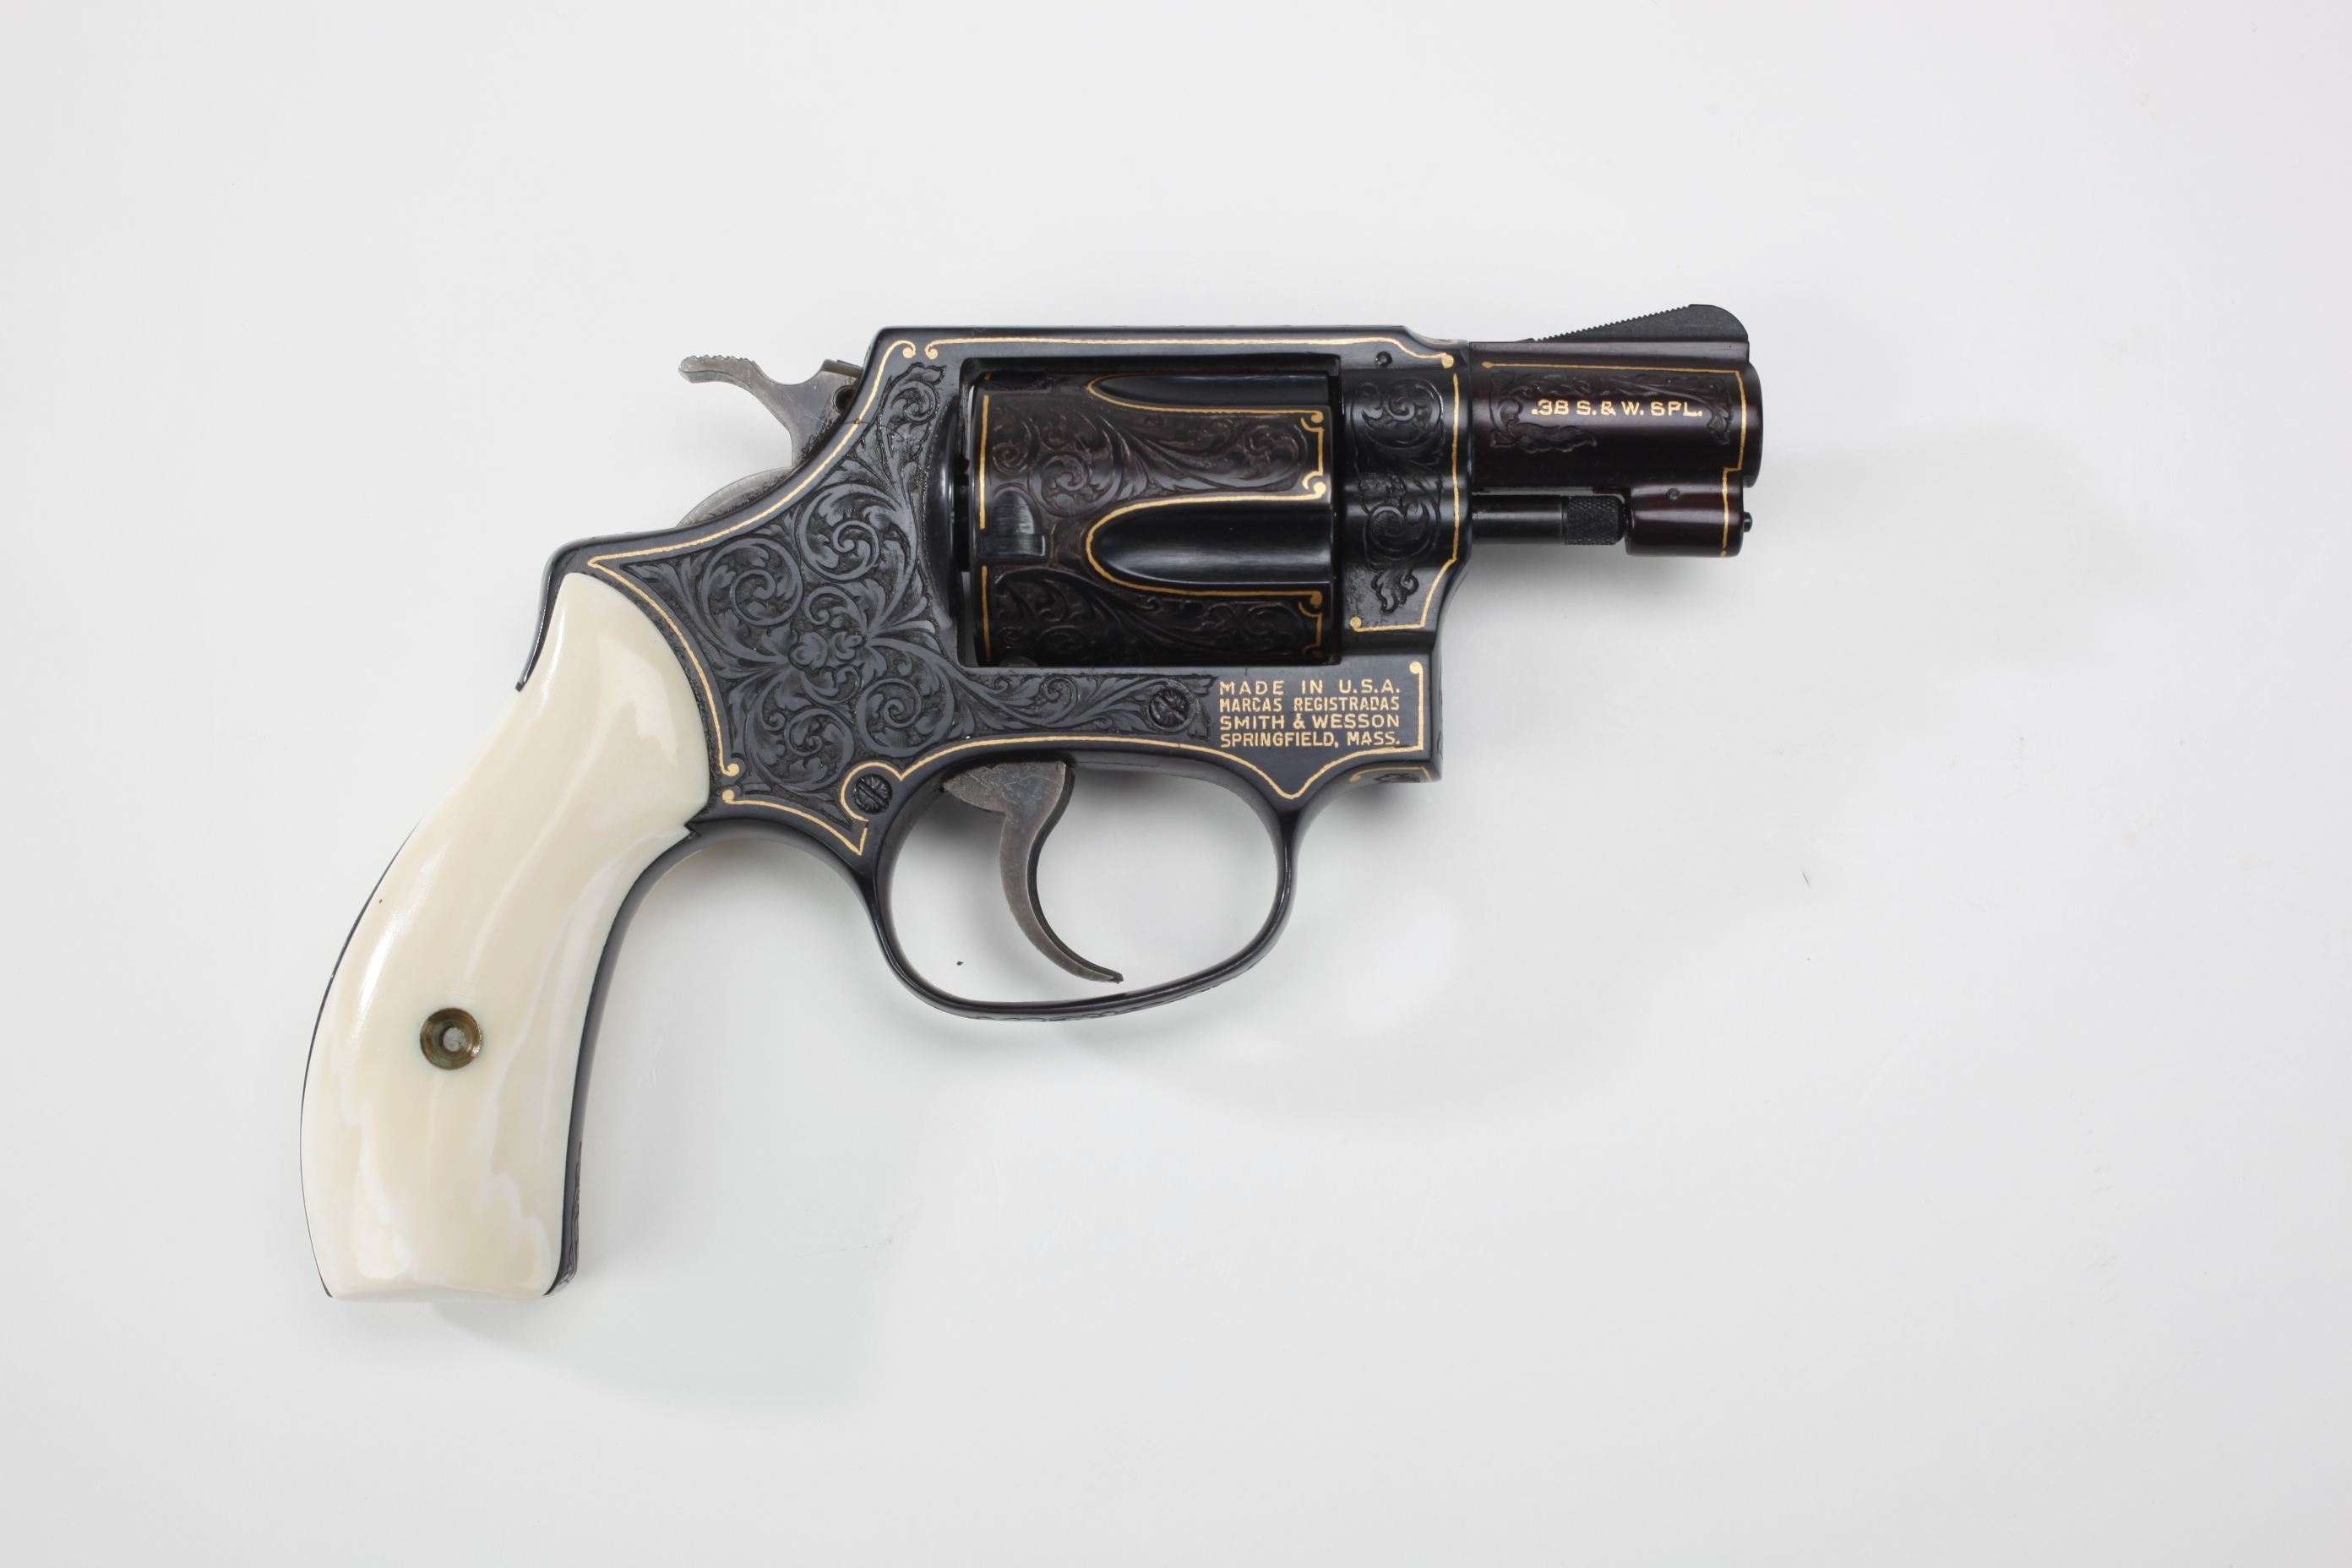 Smith & Wesson Model 36 Double-Action Revolver